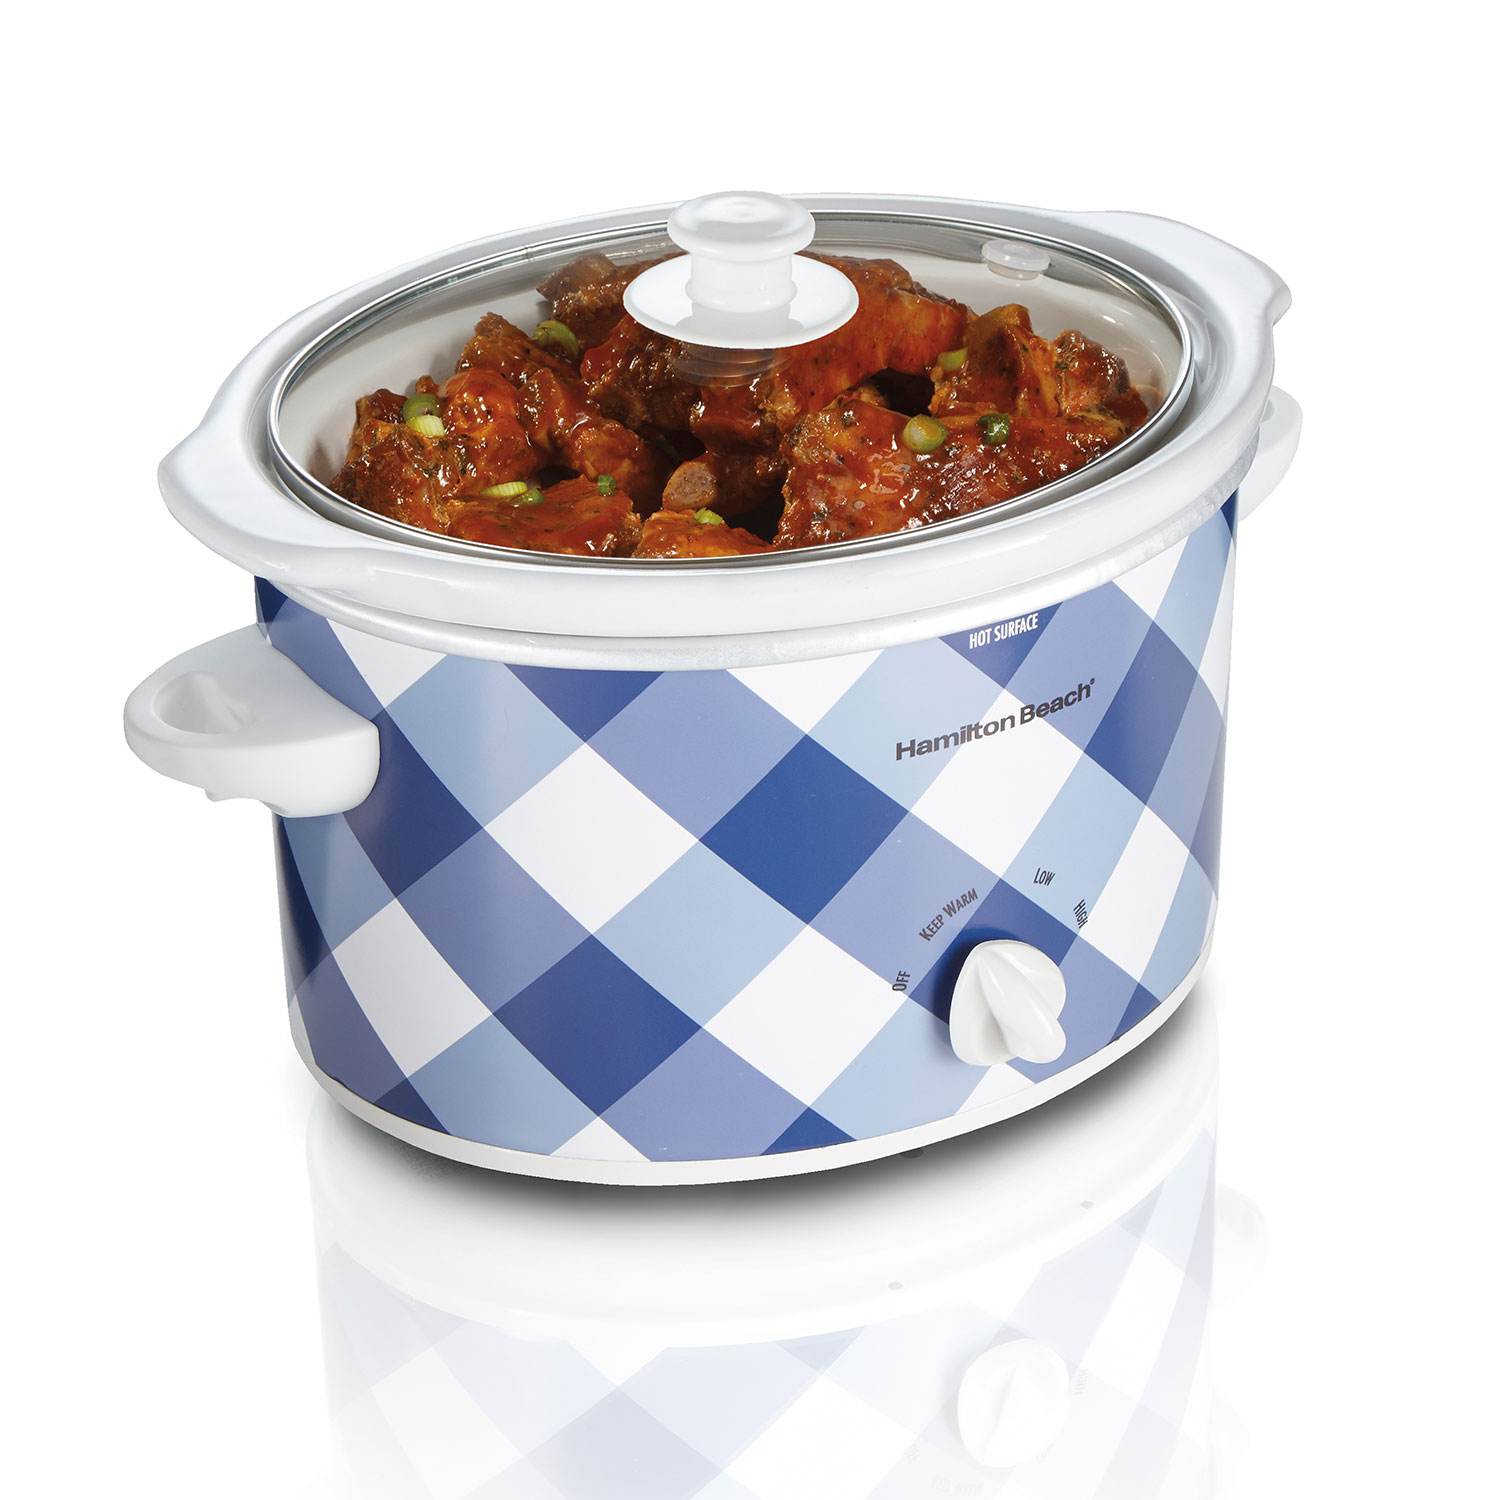 3 Quart Slow Cooker (Blue Gingham) (33232)